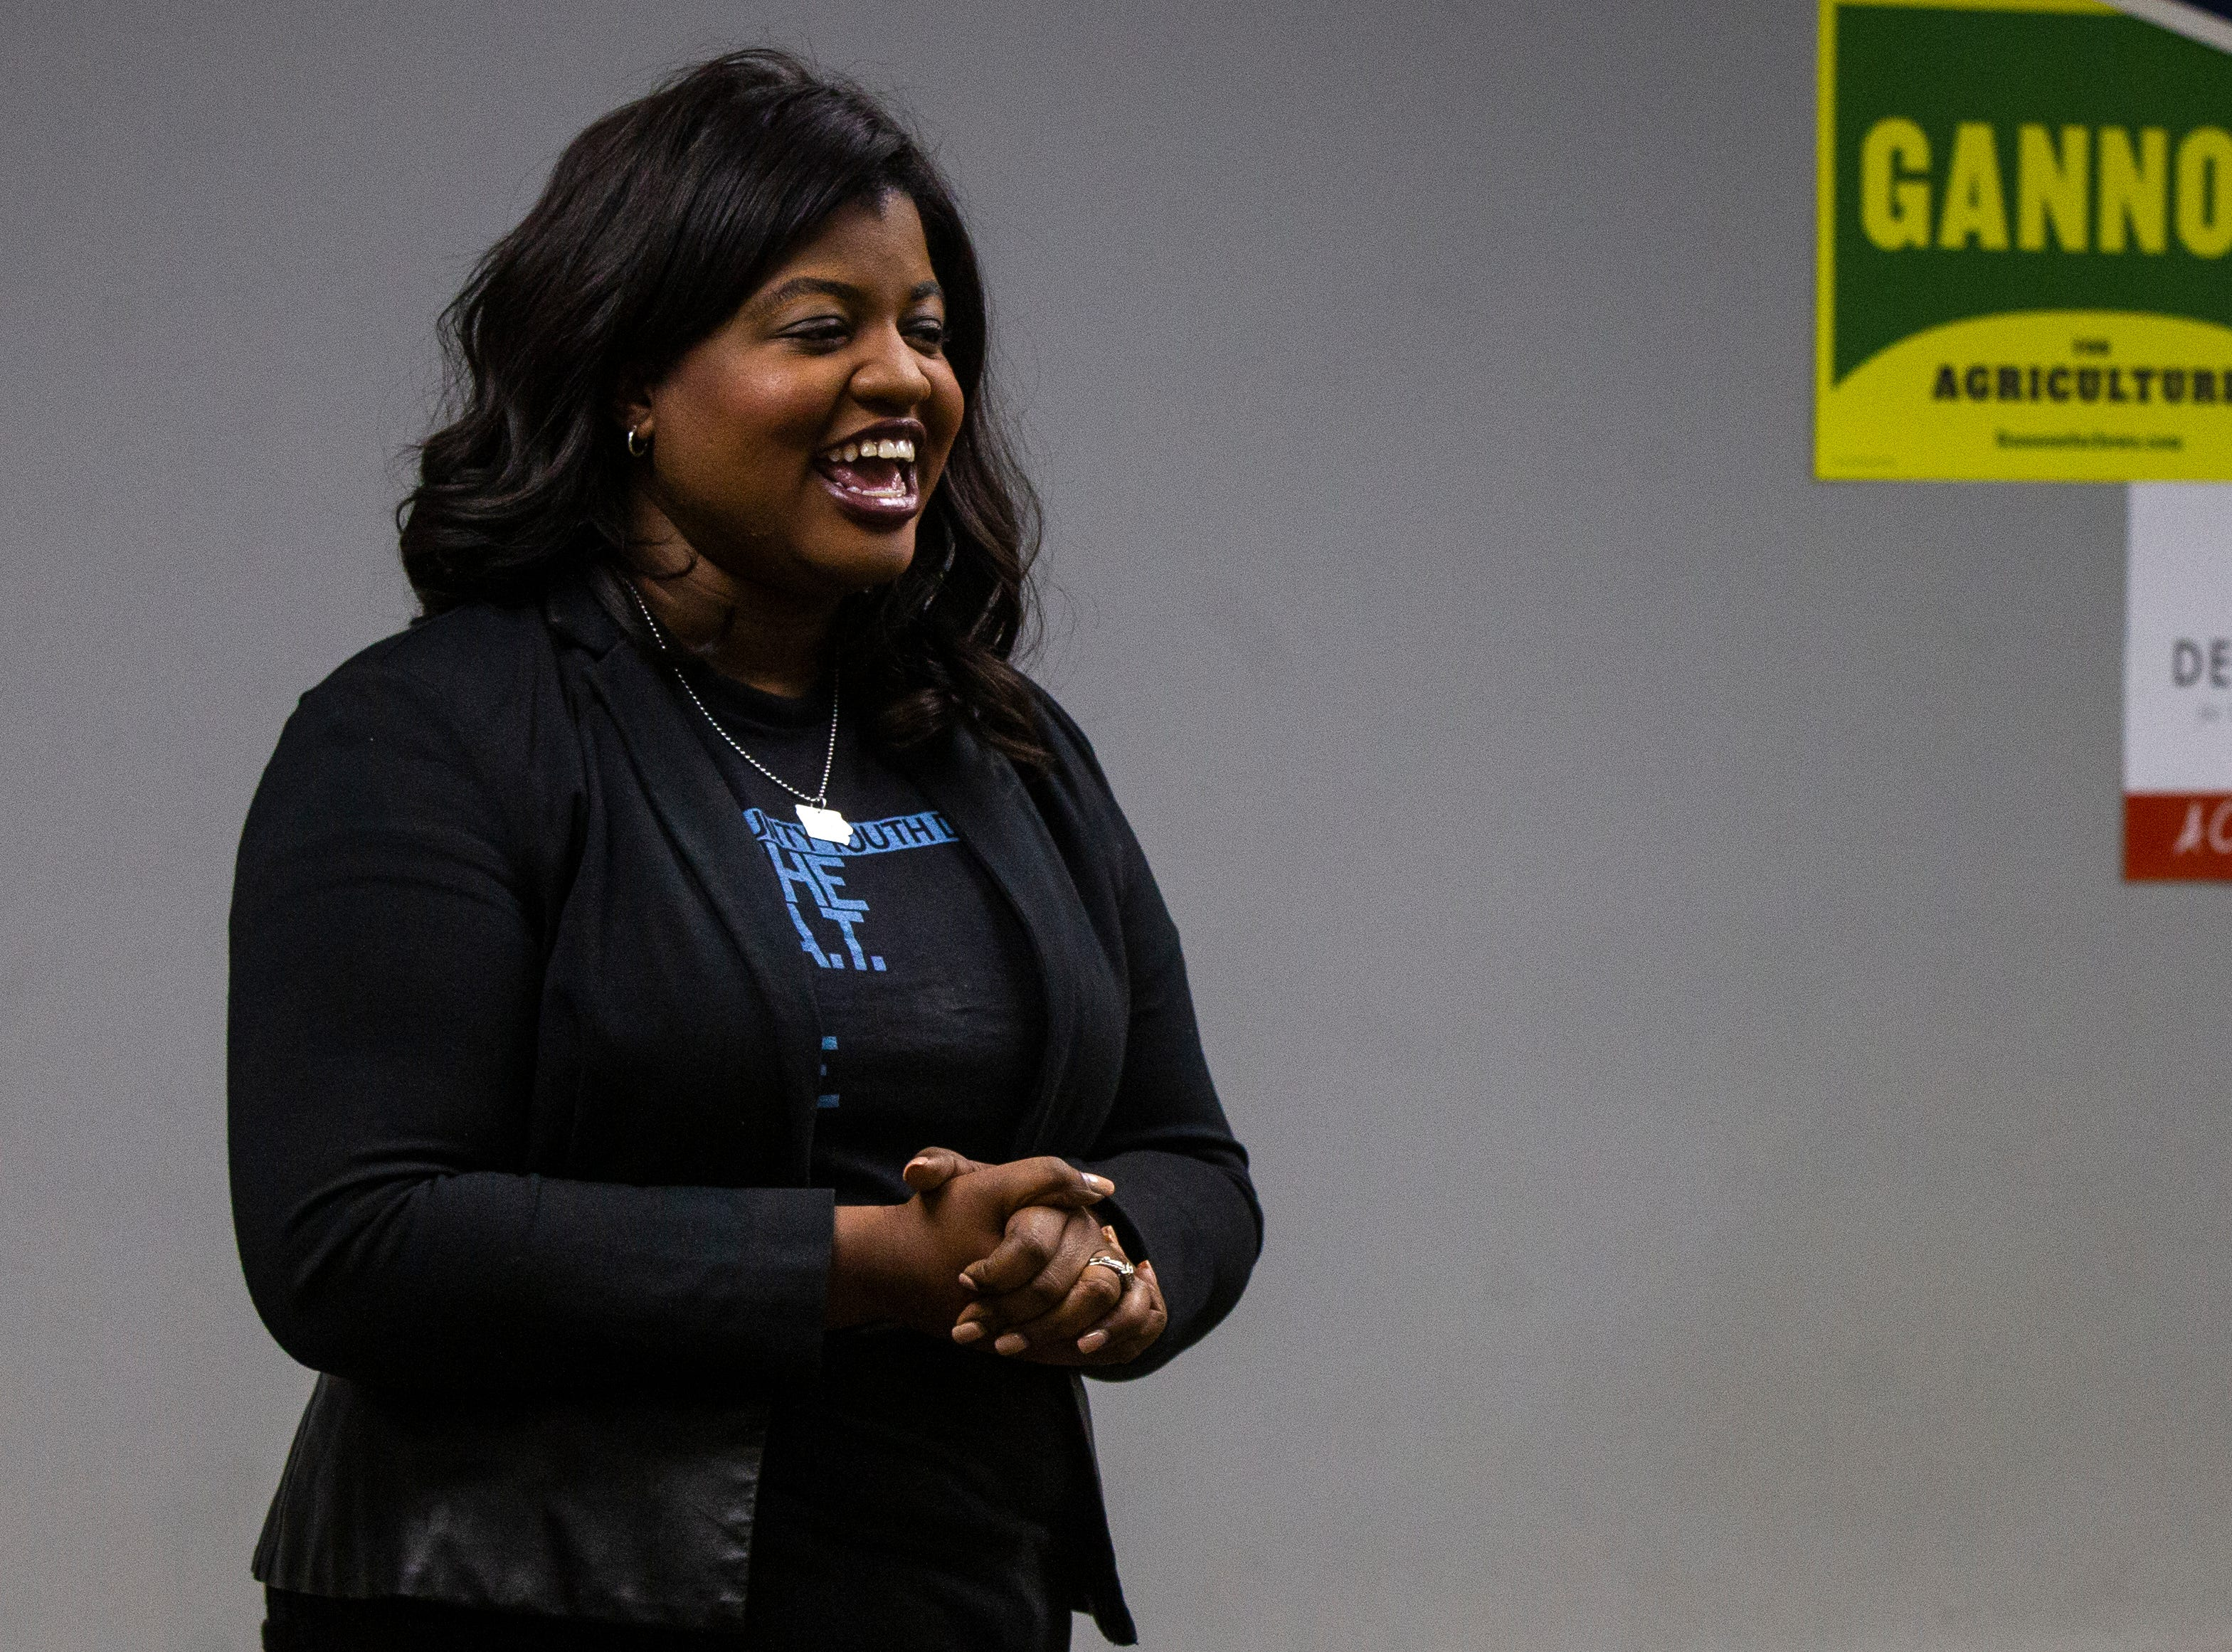 Deidre DeJear, Democratic candidate for Iowa secretary of state, speaks during an event on Wednesday, Sept. 26, 2018, at the Iowa Memorial Union on the University of Iowa campus in Iowa City.